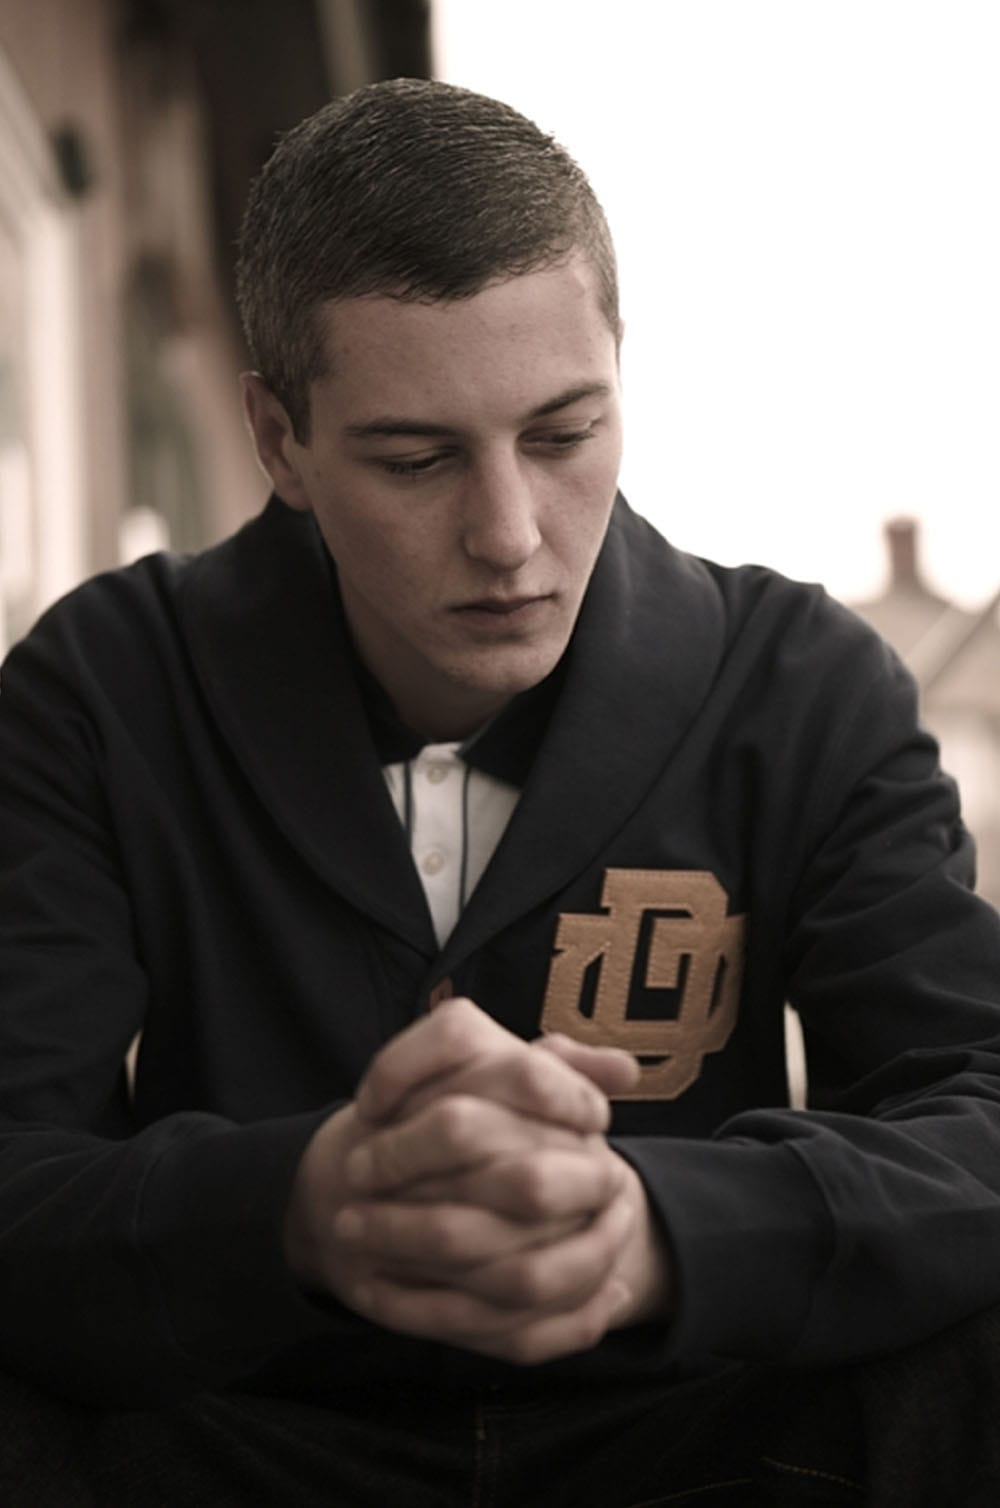 devlin About devlin james devlin (born 7 may 1989), better known mononymously as devlin, is an english rapper from dagenham, london, england, he attended the brittons academy in rainham.